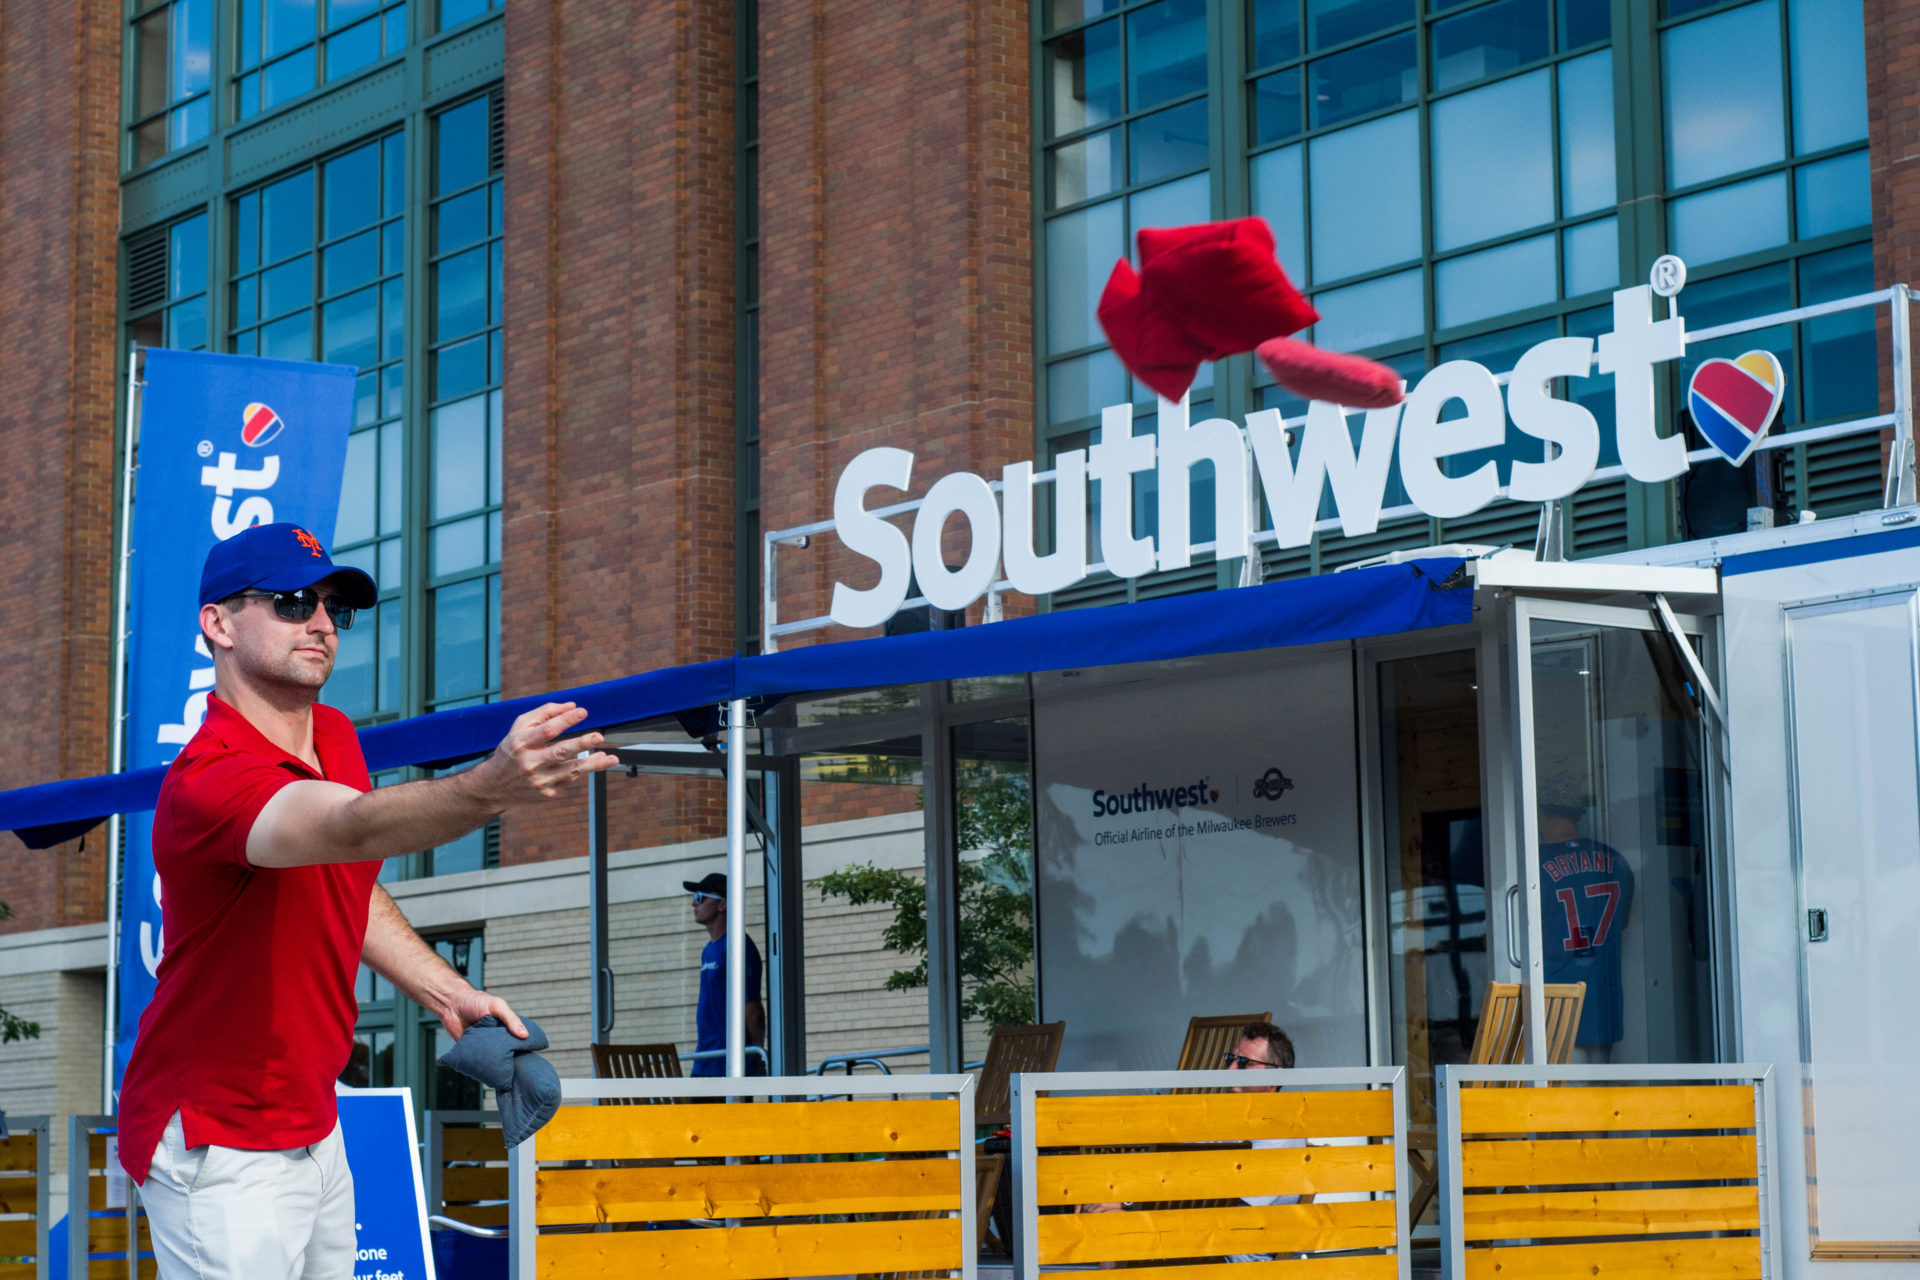 Southwest Airlines Porch Tour Experiential Marketing Event Photography Agency Brand Photography Brand Videography  Experiential Activations O Hello Media